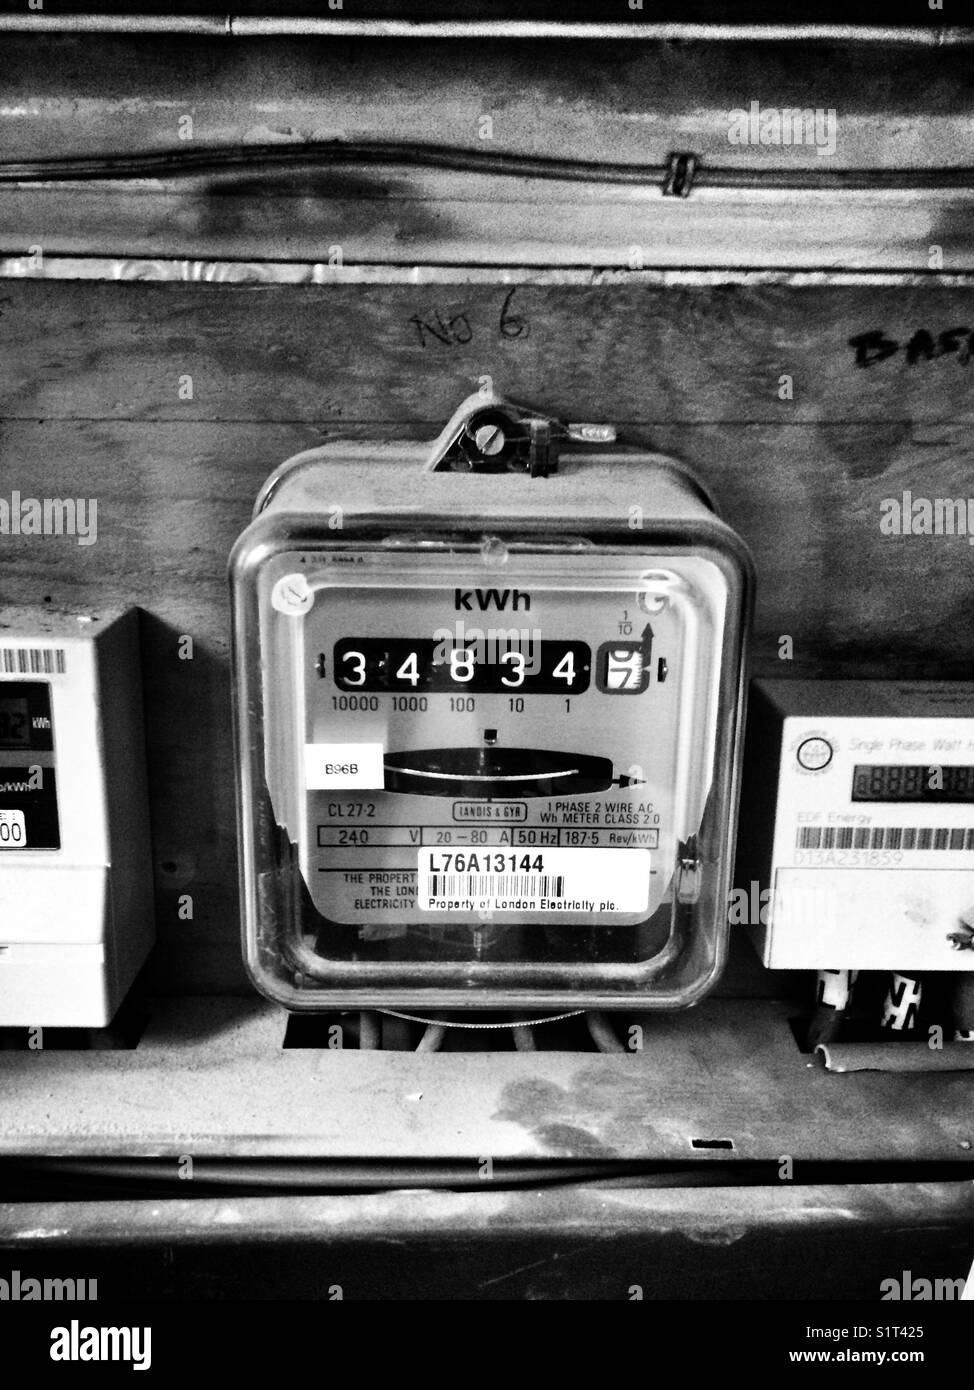 medium resolution of electricity meters in flat complex stock image